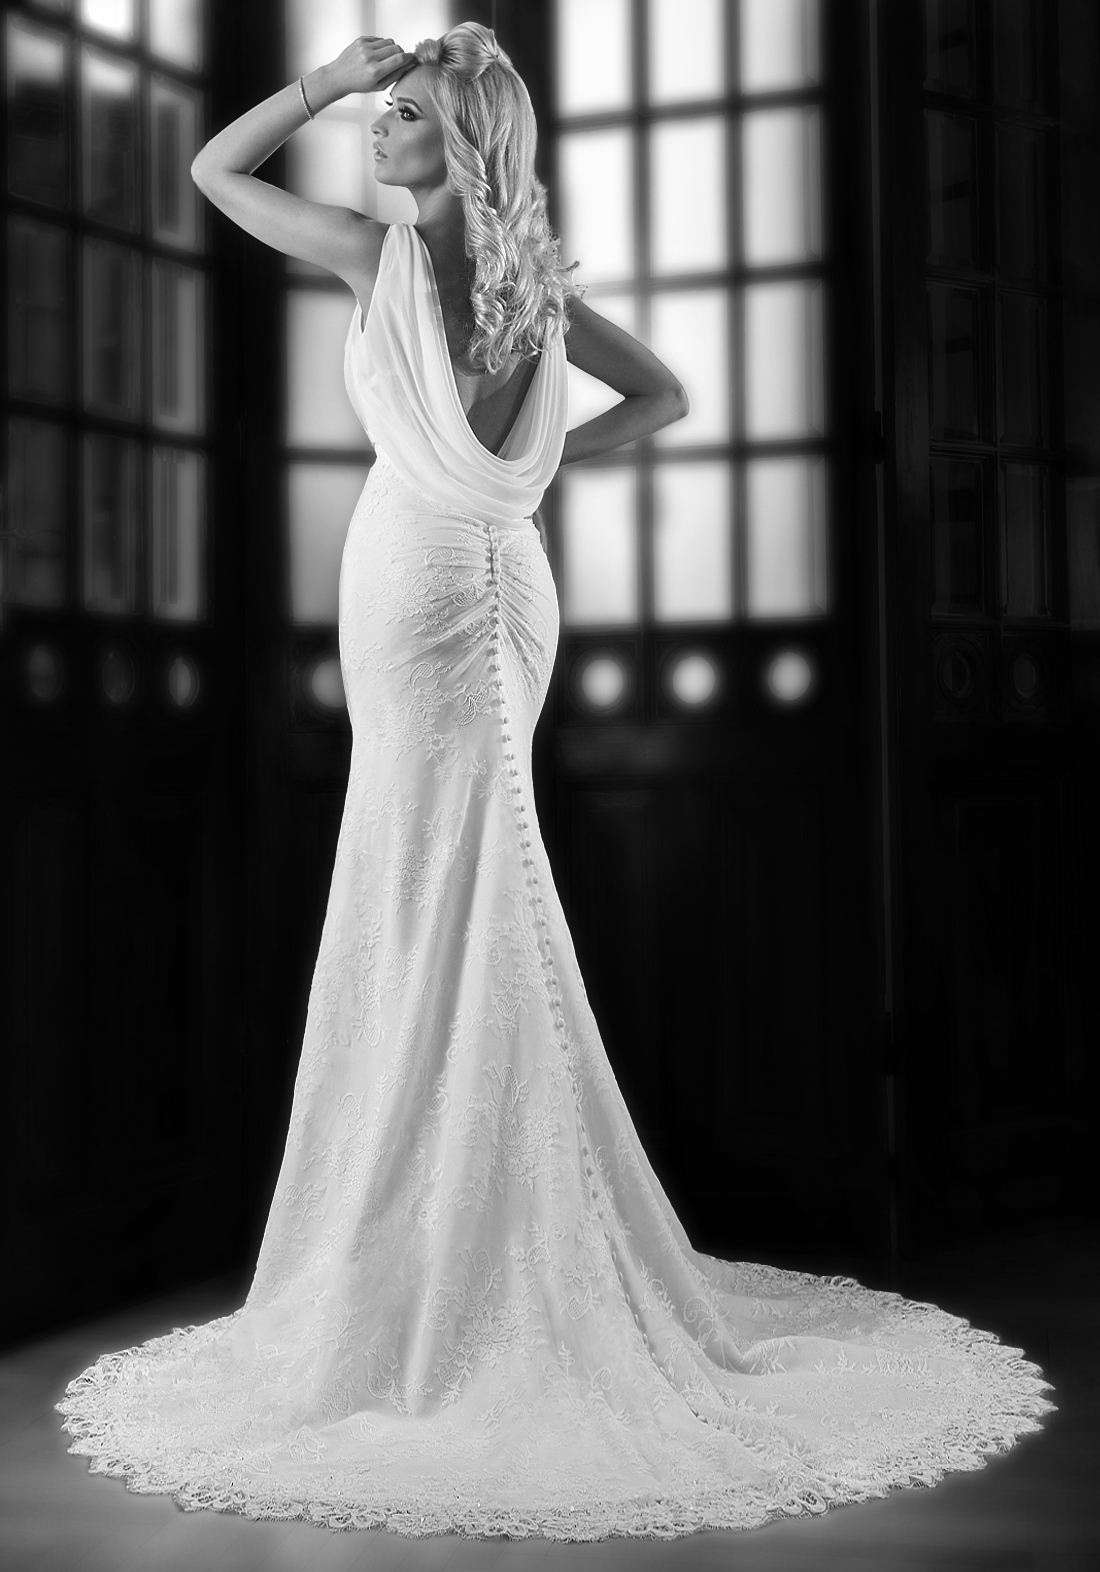 bien-savvy-wedding-dresses-2014-collection-35-01232014